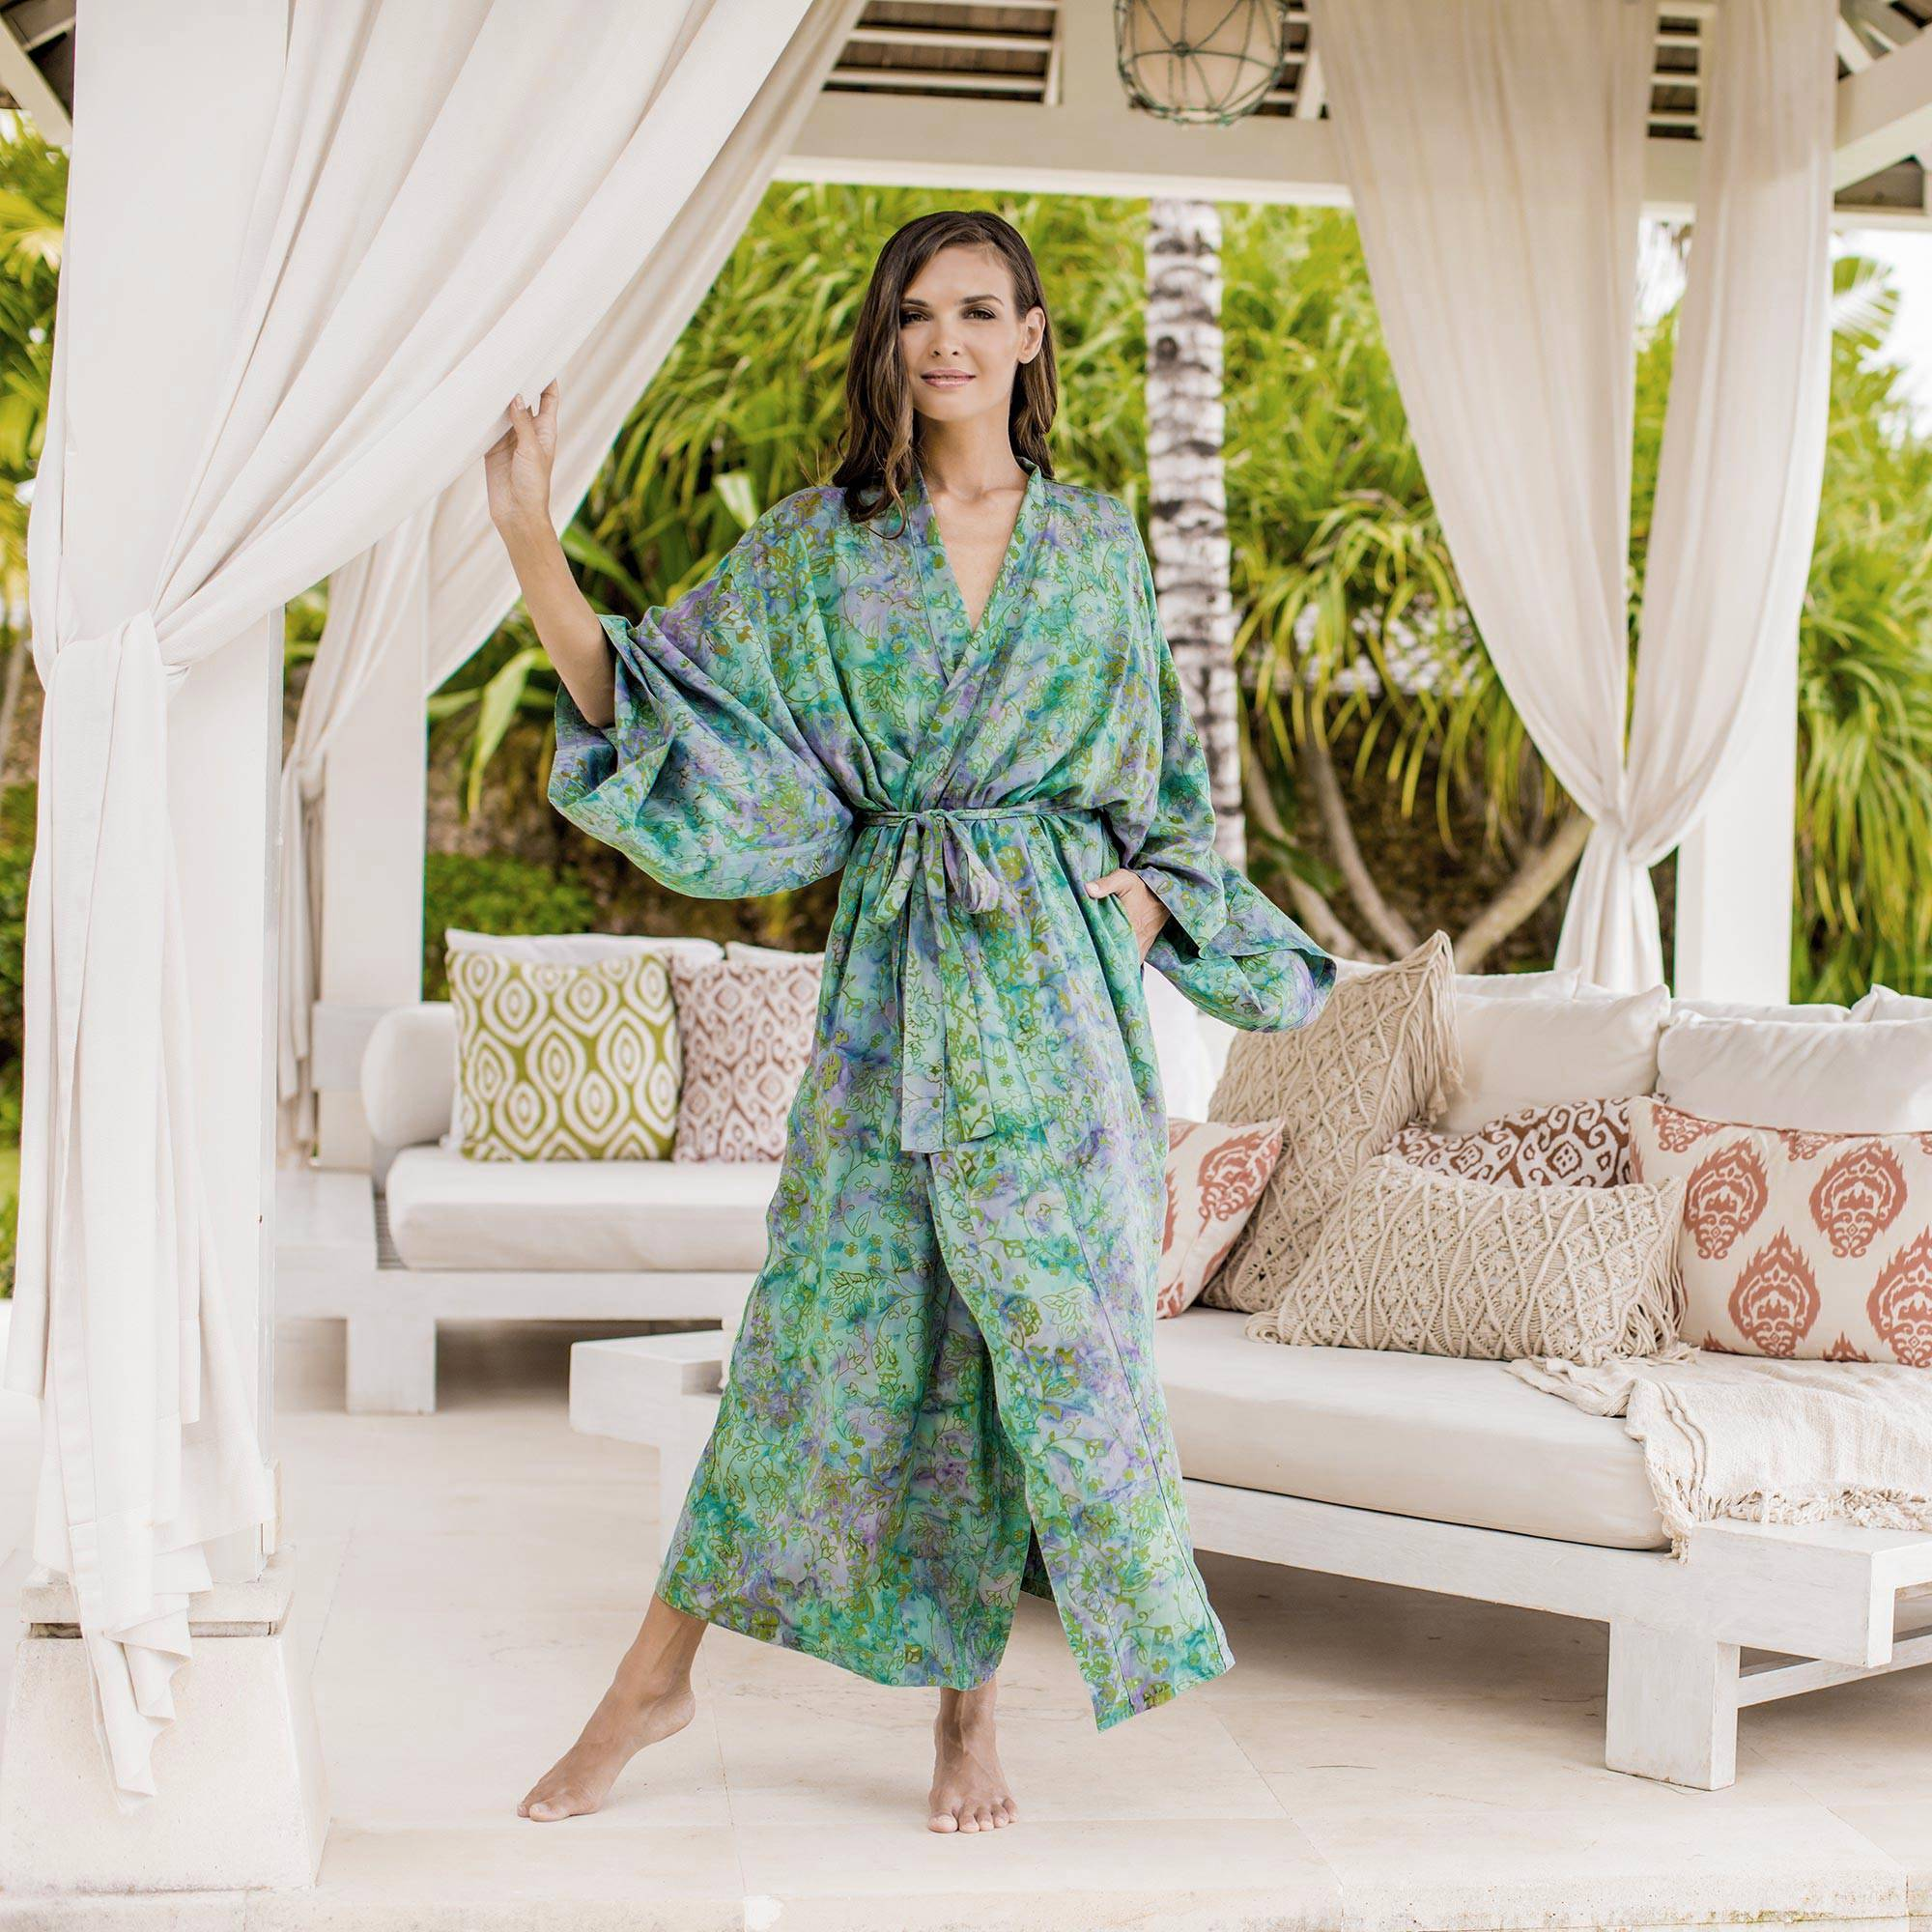 Misty Javanese Forest Artisan Crafted Batik Robe perfect mother's day gift ideas